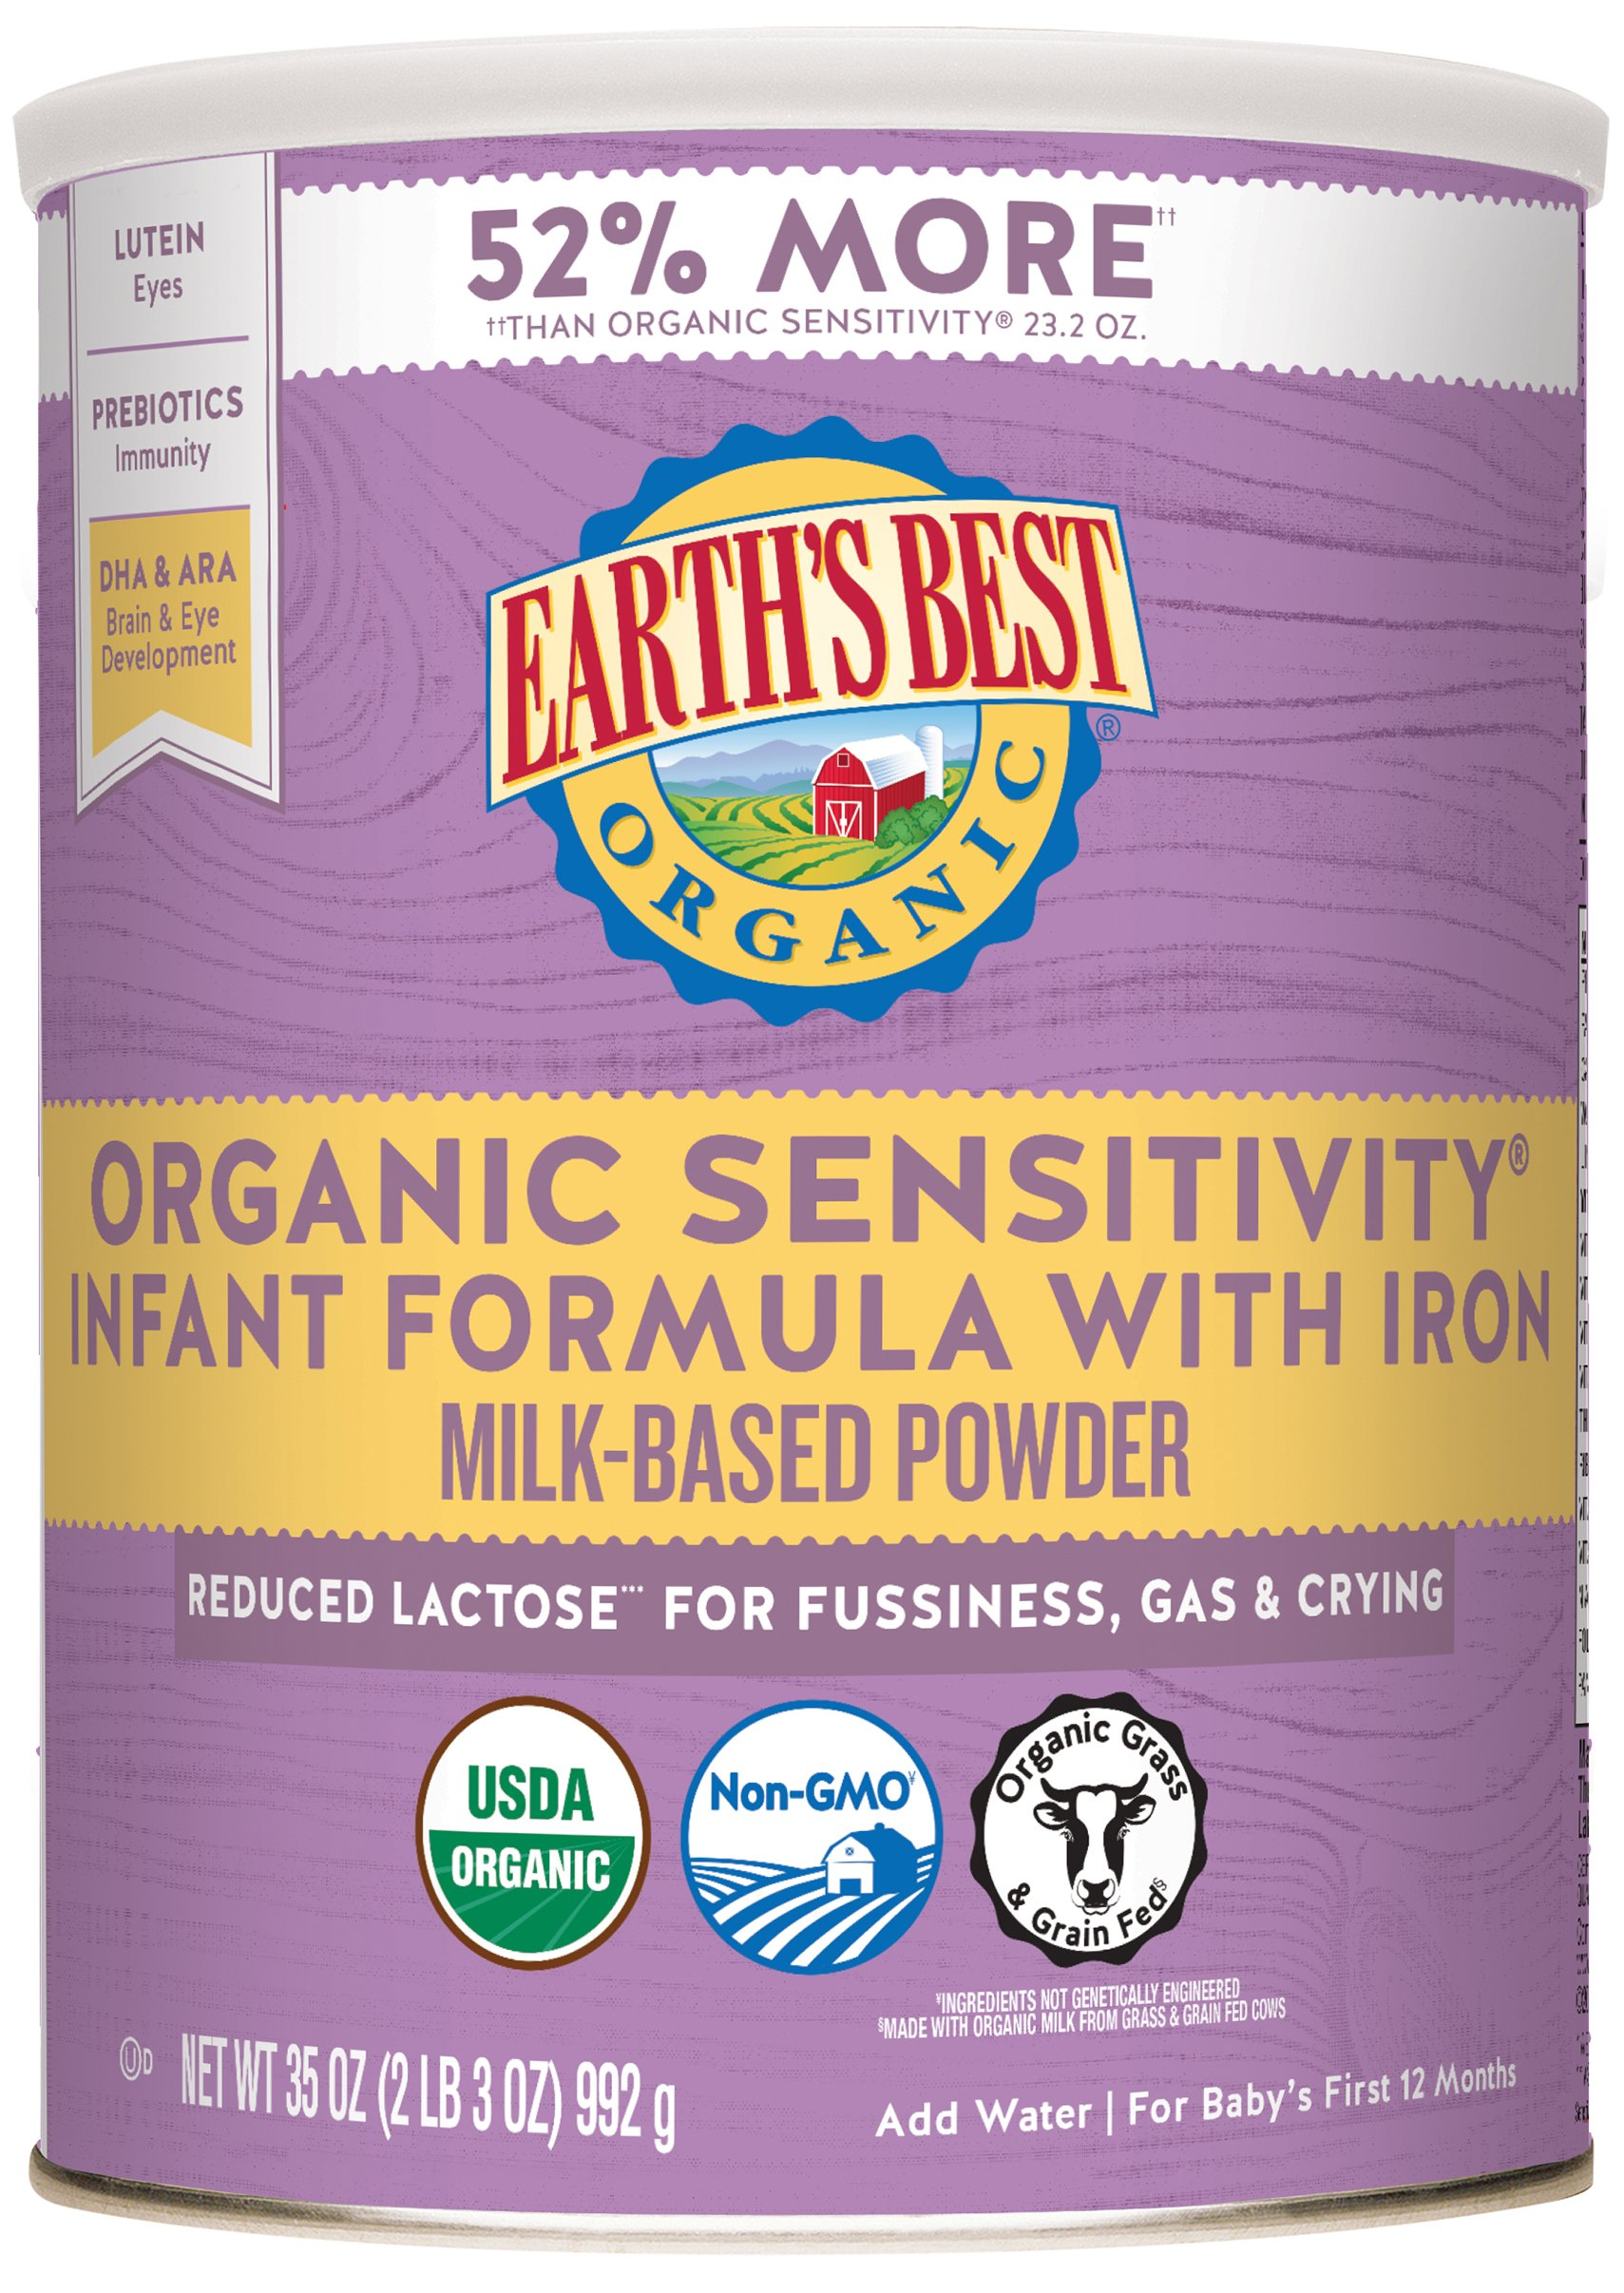 Earth's Best Organic Low Lactose Sensitivity Infant Powder Formula with Iron, Omega-3 DHA and Omega-6 ARA, 35 oz. by Earth's Best (Image #1)